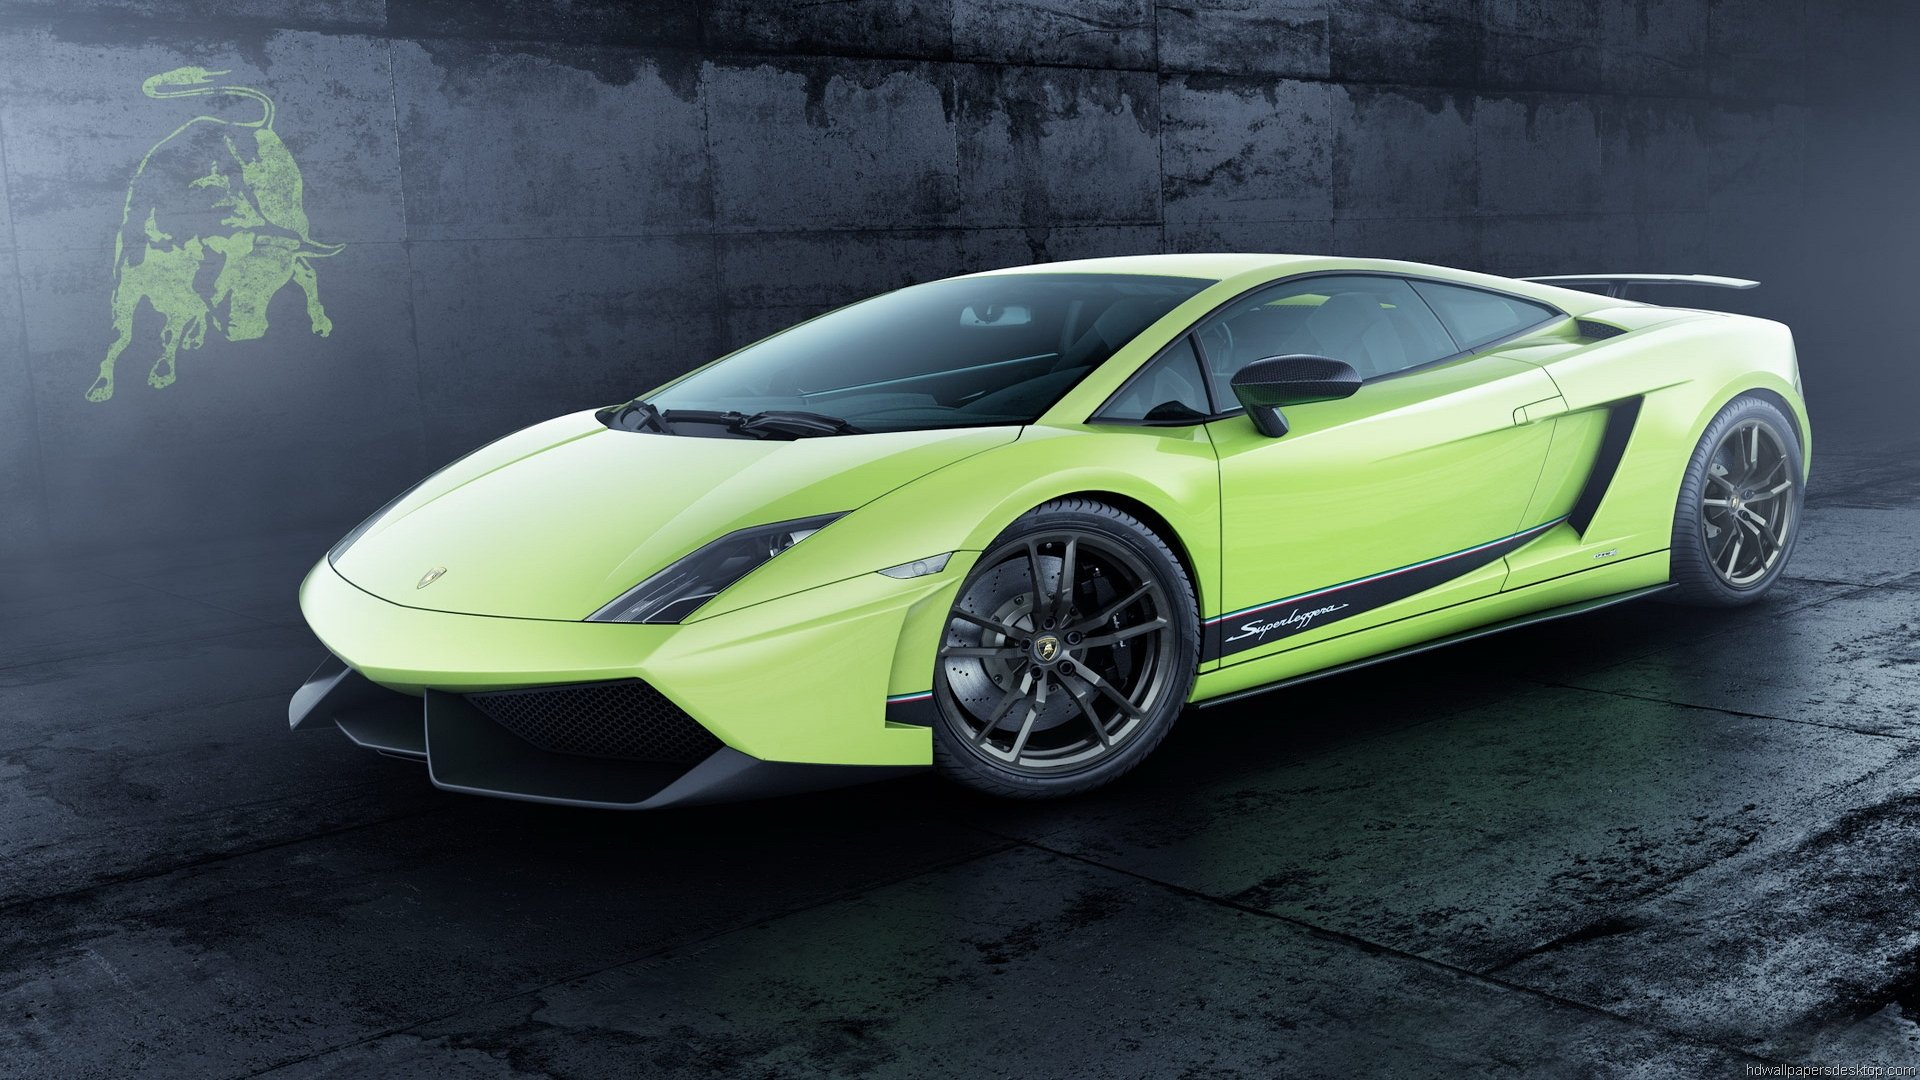 Lamborghini HD Wallpaper Full HD 1080p HDTV Wallpaper Lamborghini 1920x1080